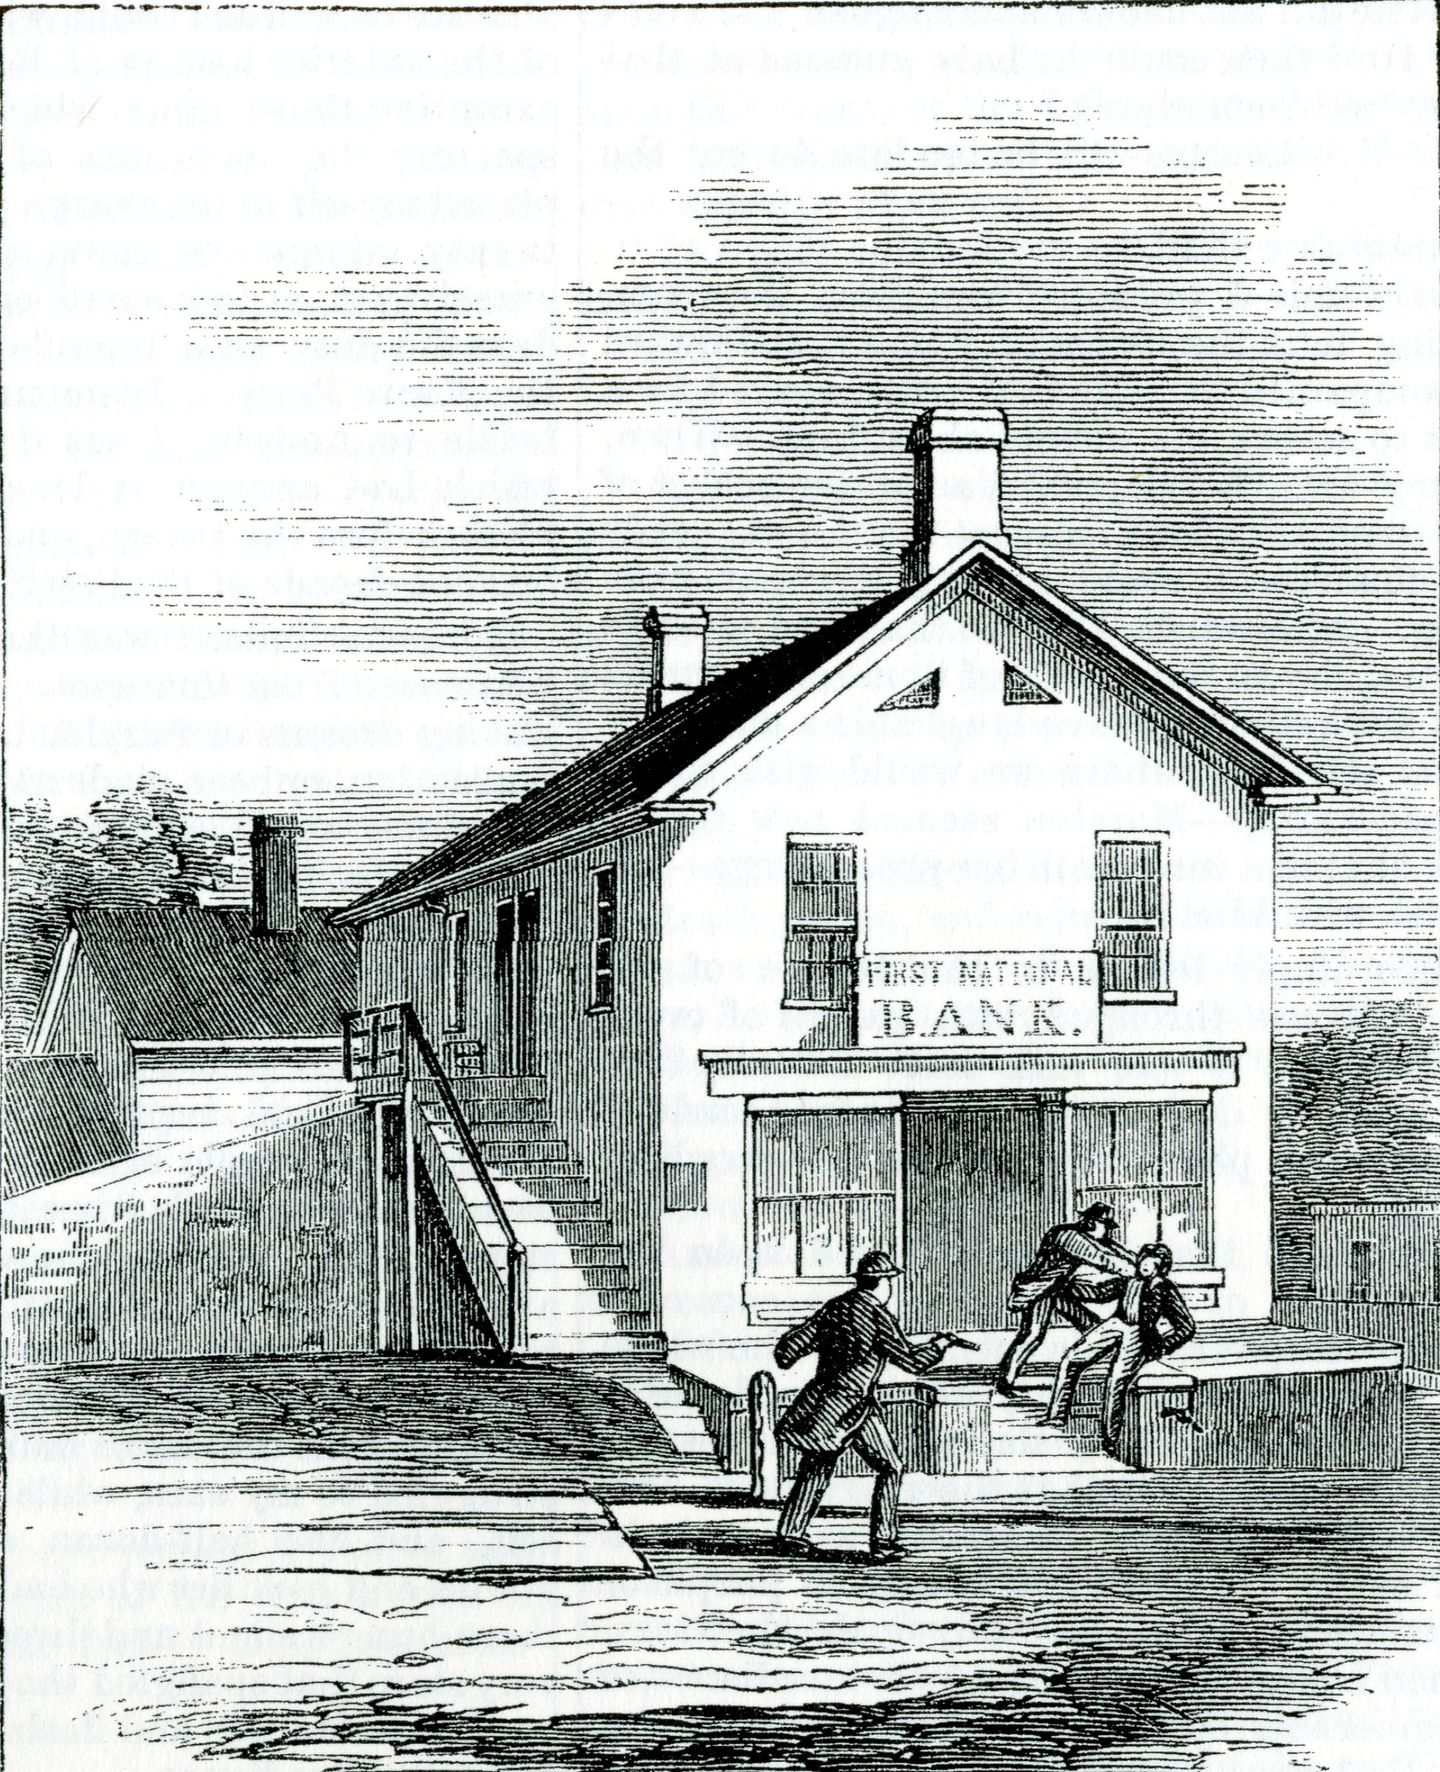 An old editorial illustration depicts William H.               Blaisdell of St. Albans accost a raider outside of the               First National Bank as another Confederate raced toward               them. Blaisdell, like others that day, was taken at               gunpoint into what today is Taylor Park. The First               National sat at the southeast corner of Main and Fairfield               streets, across the street from what is now Taylor Park.               CREDIT: VERMONT HISTORICAL SOCIETY (these images               originally appeared in Frank Leslie's magazine)